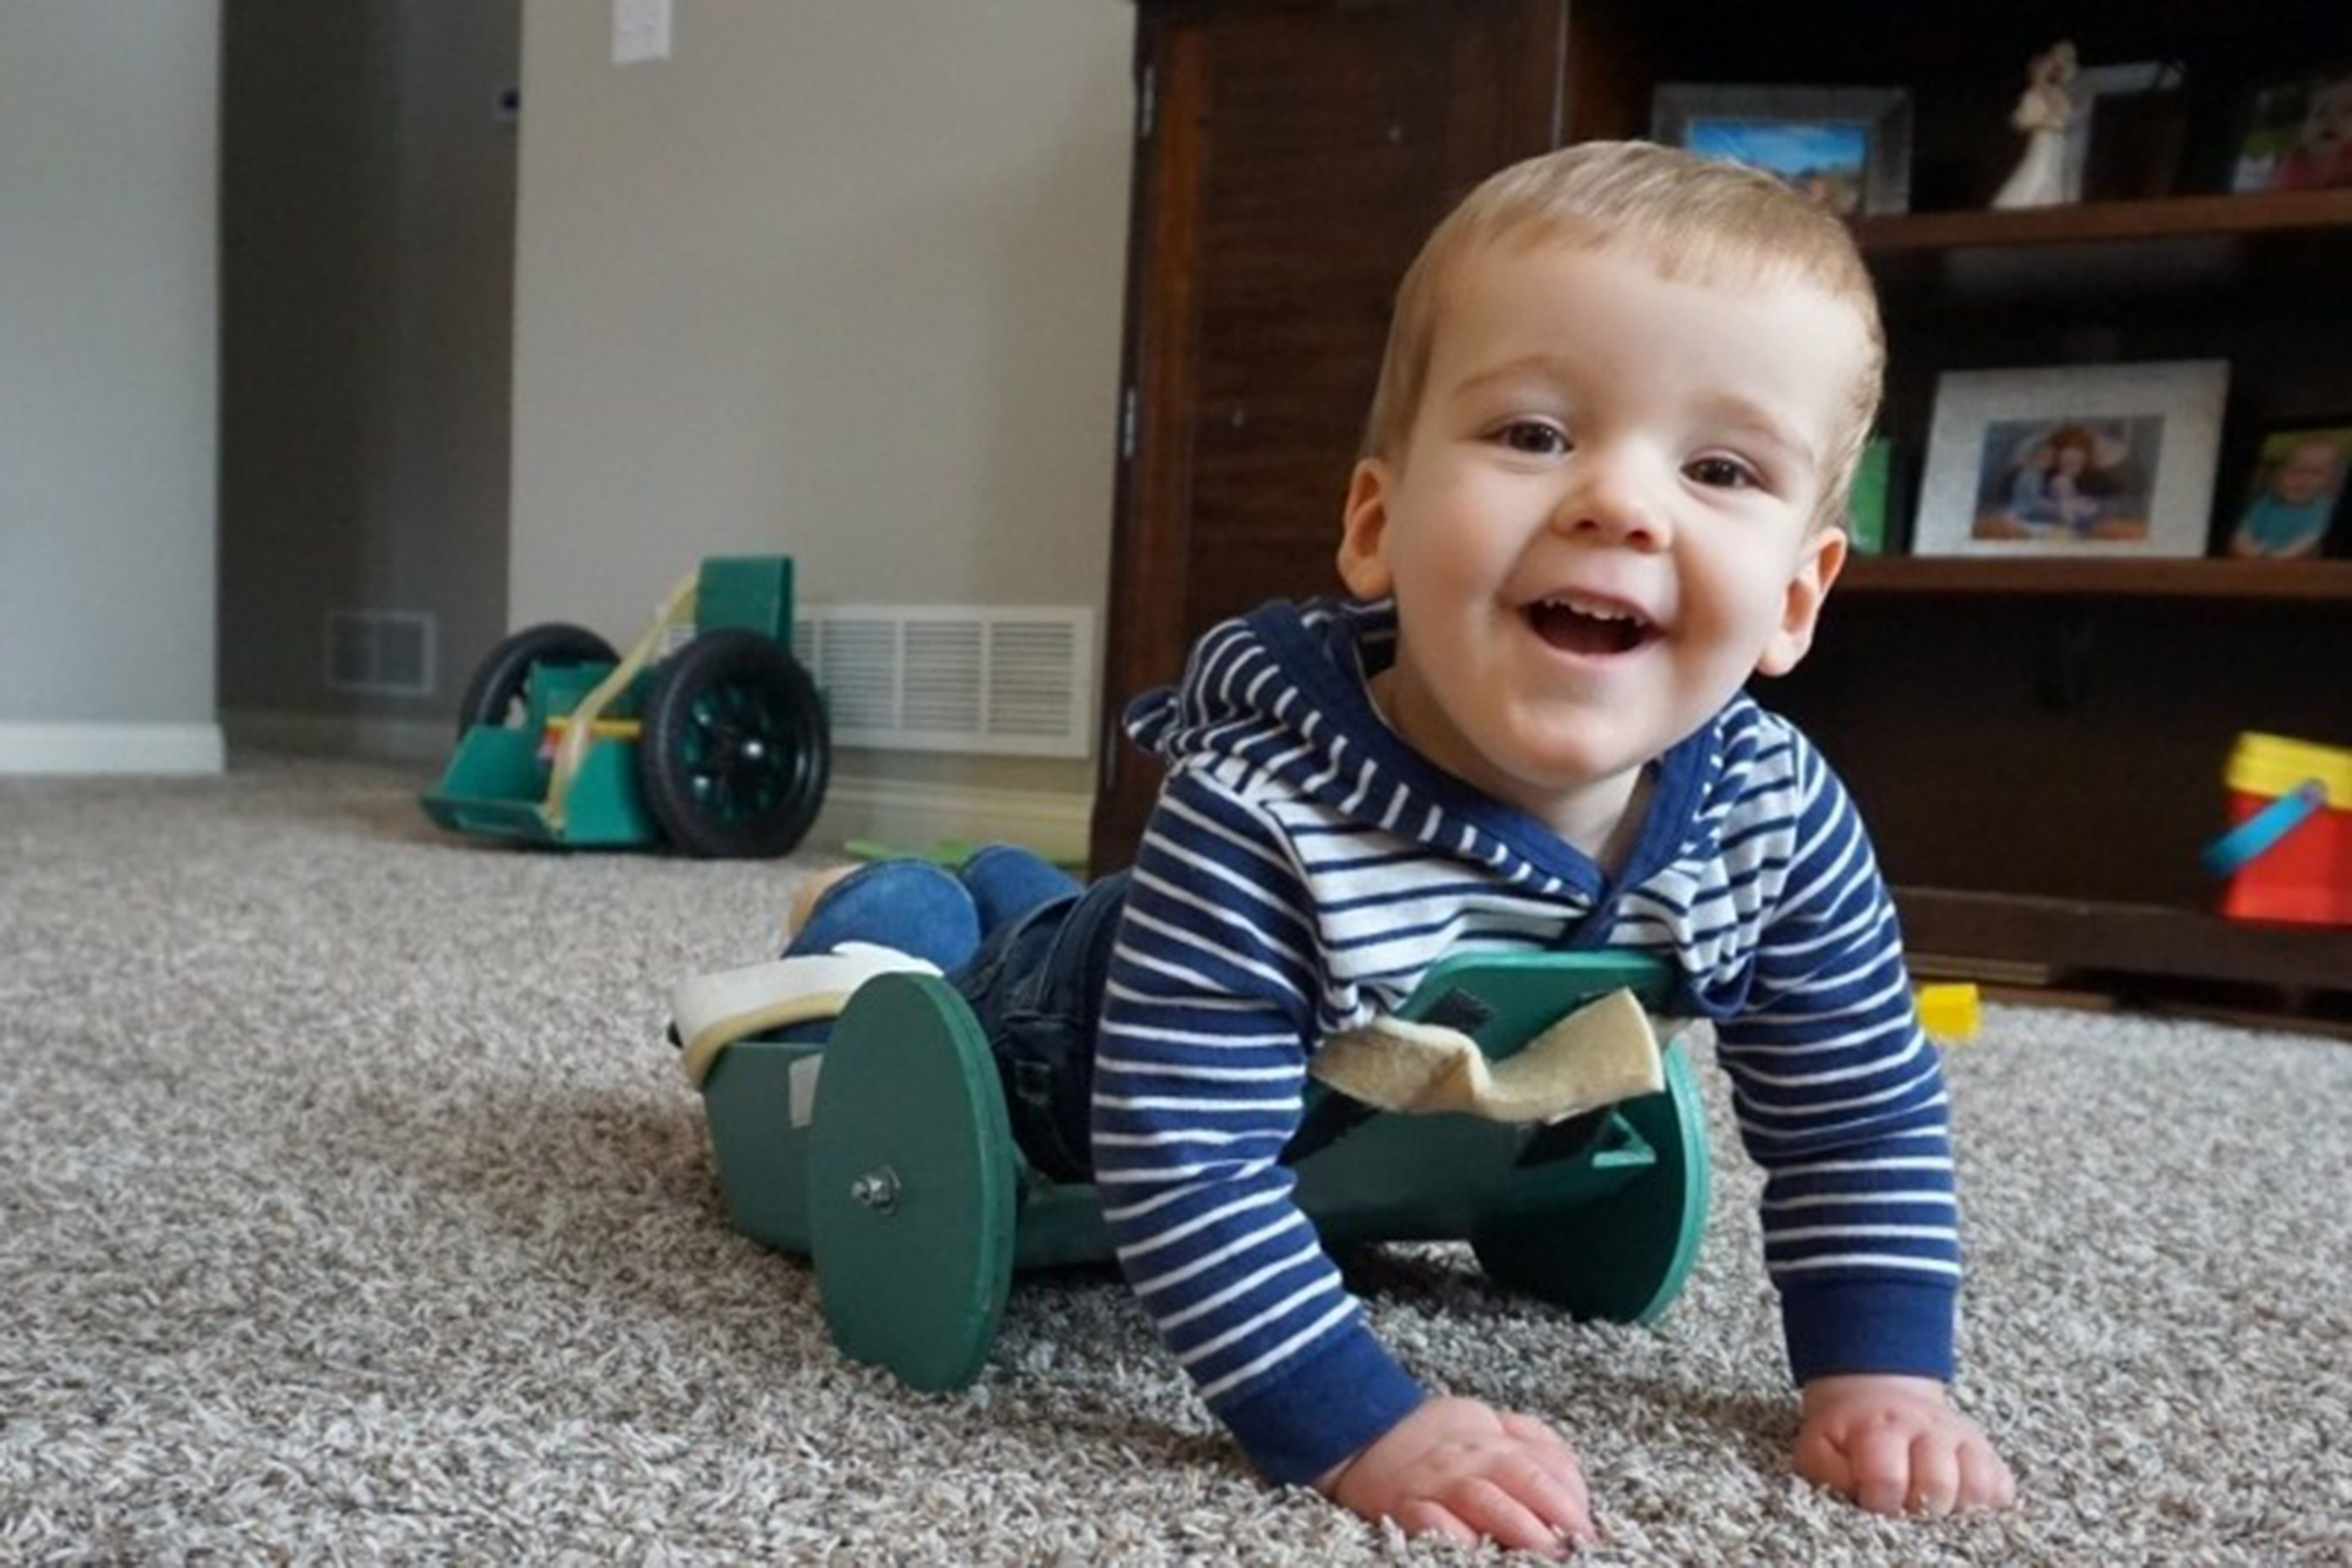 Brody Moreland with Spina Bifida using the Frog